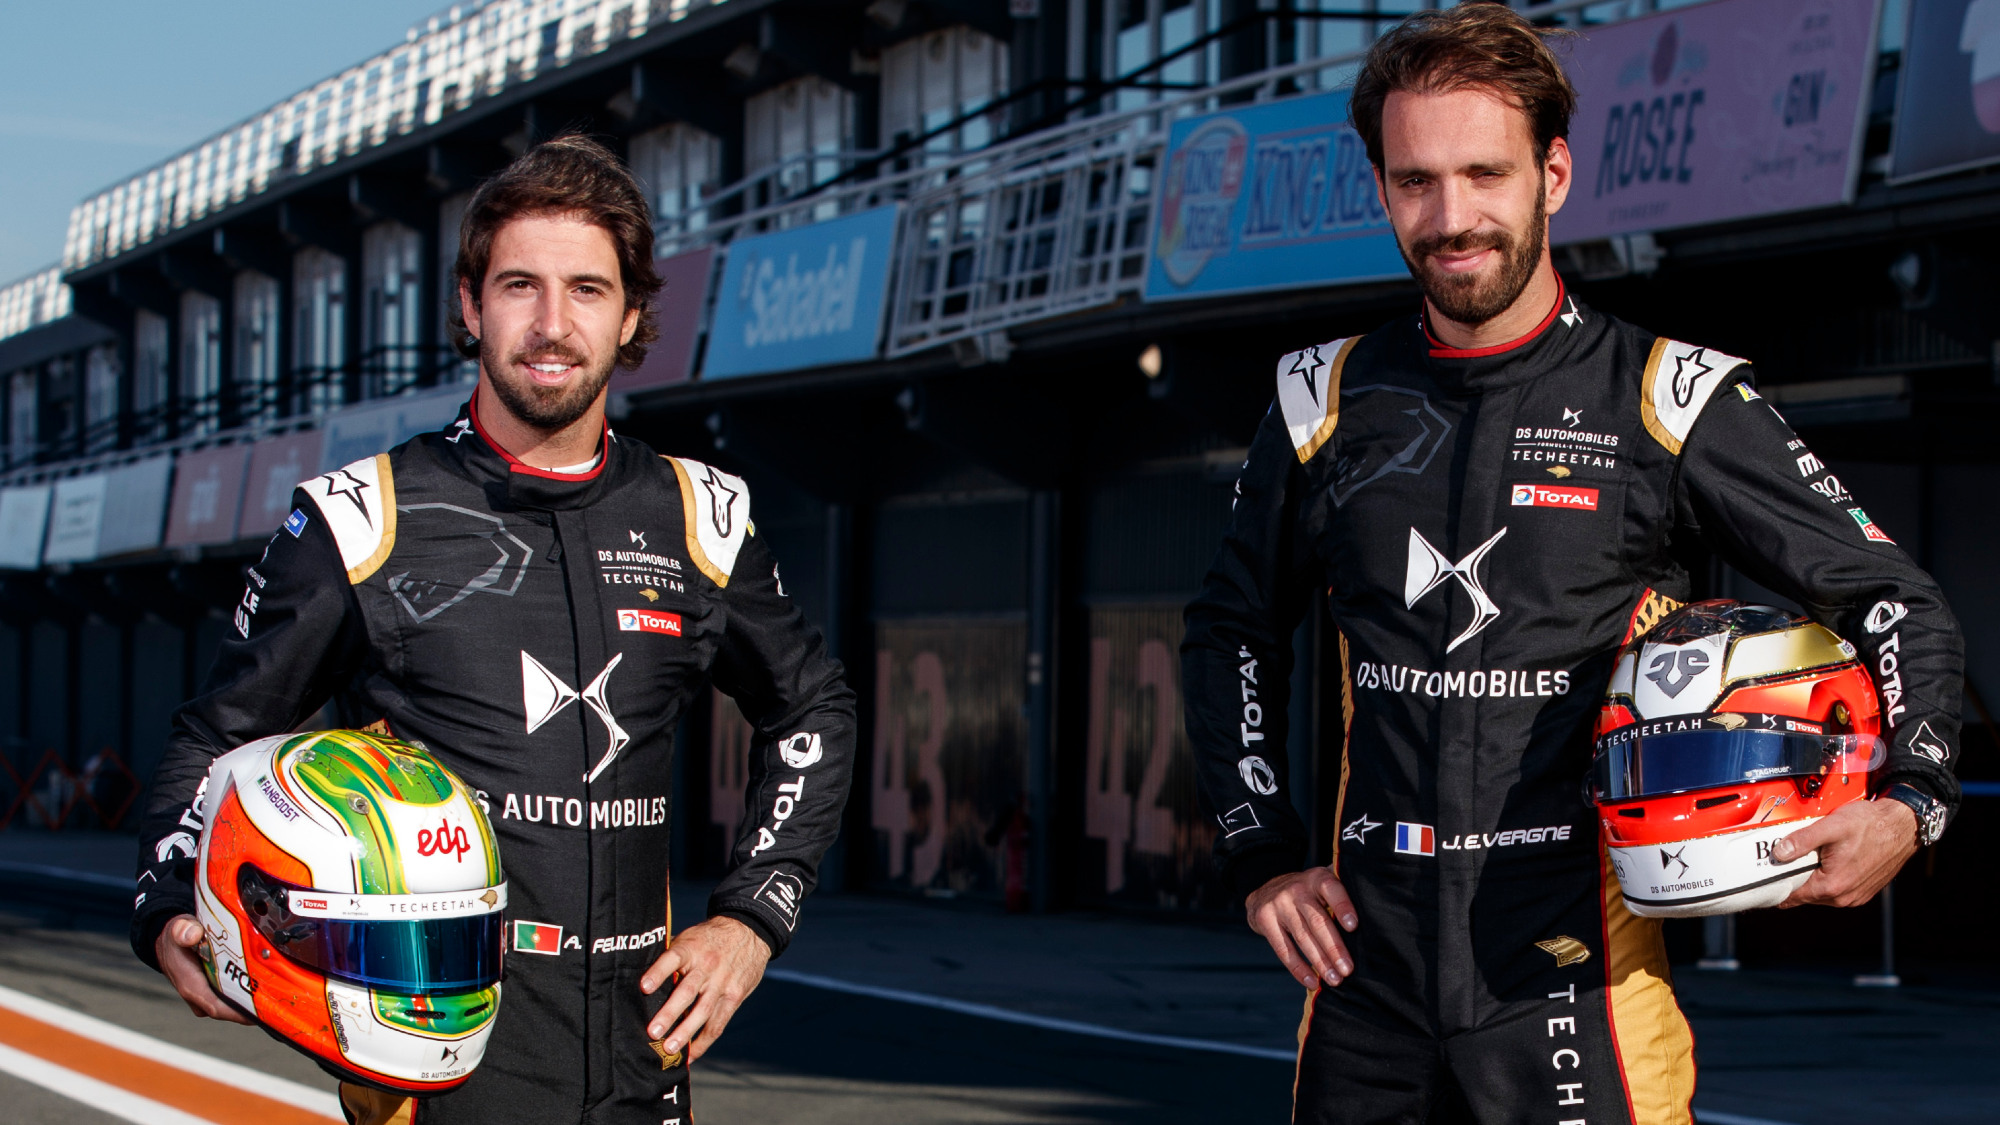 Antonio Felix da Costa and Jean-Eric Vergne